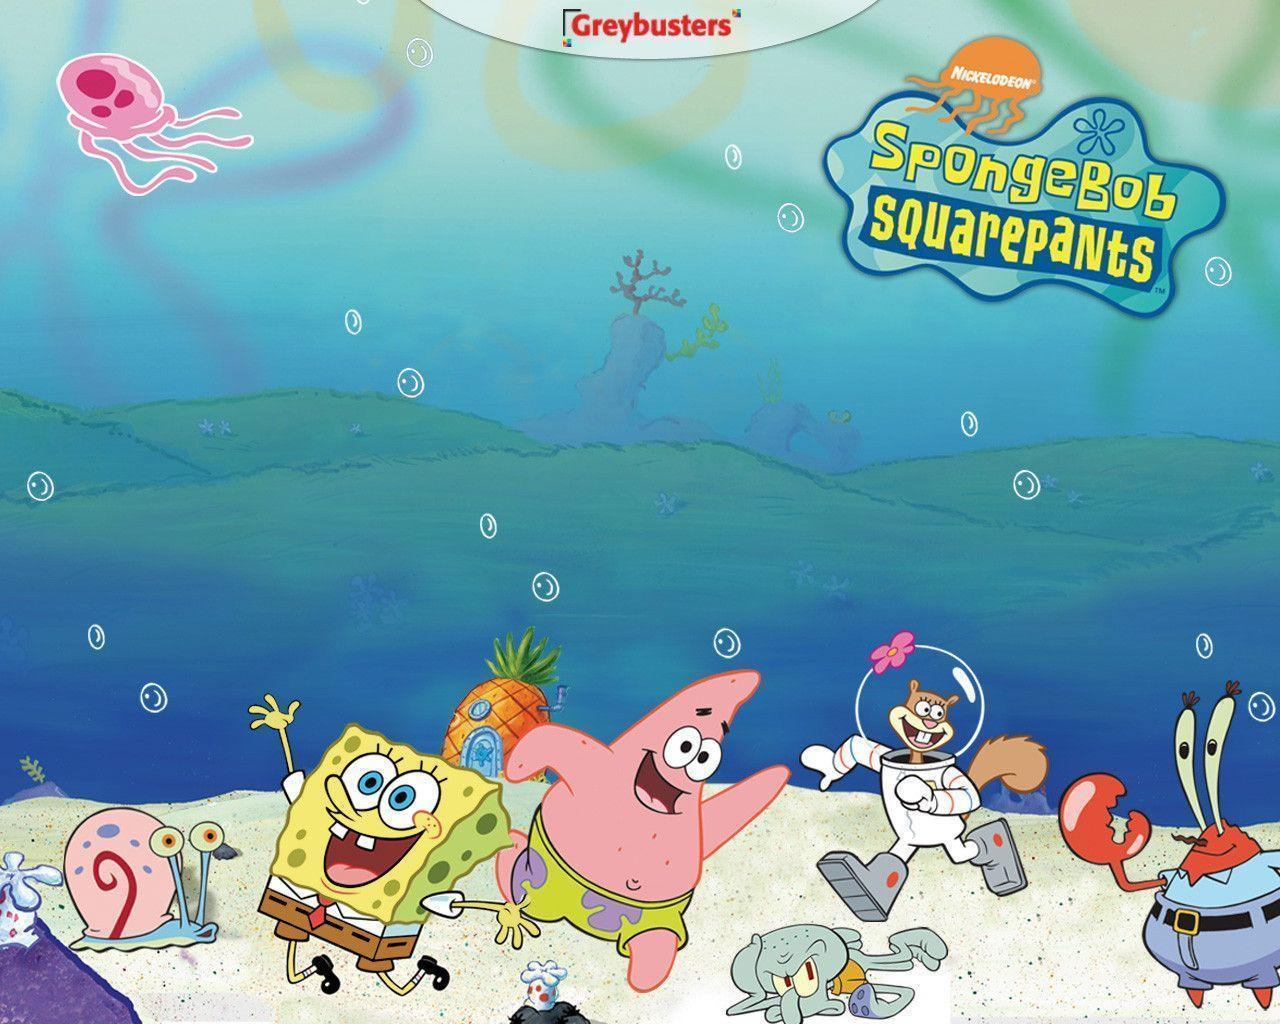 Spongebob Squarepants Characters Wallpaper | Wallpaper | Basic .